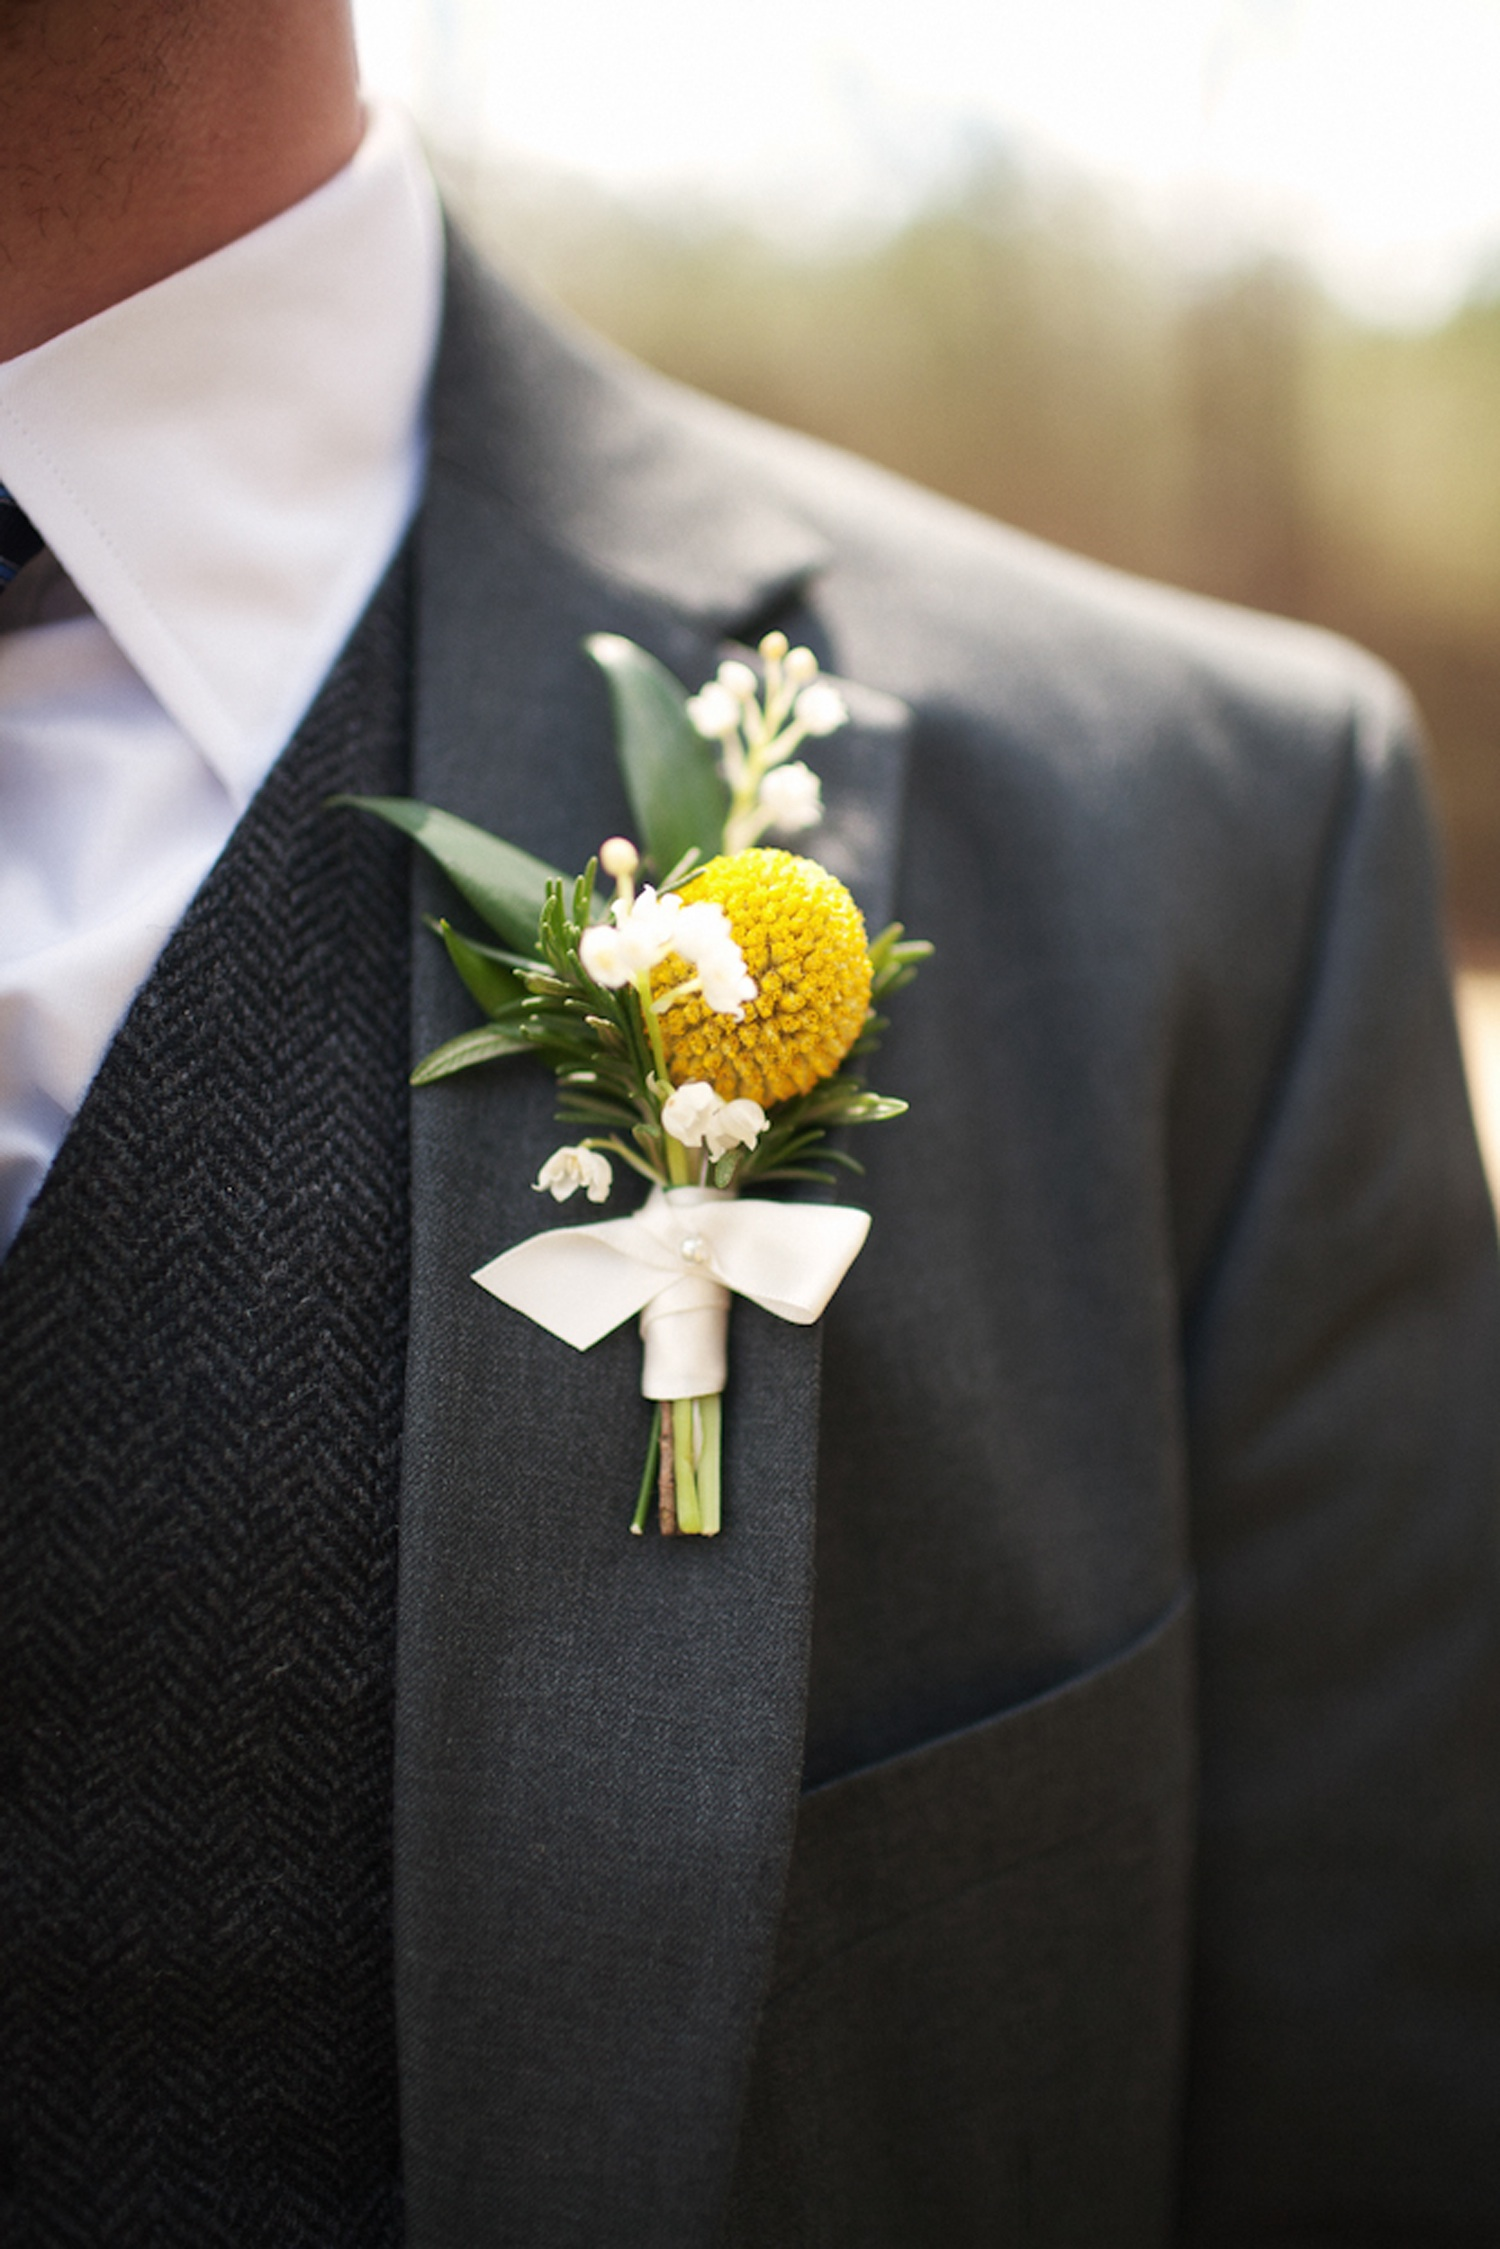 Wedding Flower Ideas For Groomsmen : Groom wears charcoal grey suit, yellow boutonniere OneWed.com